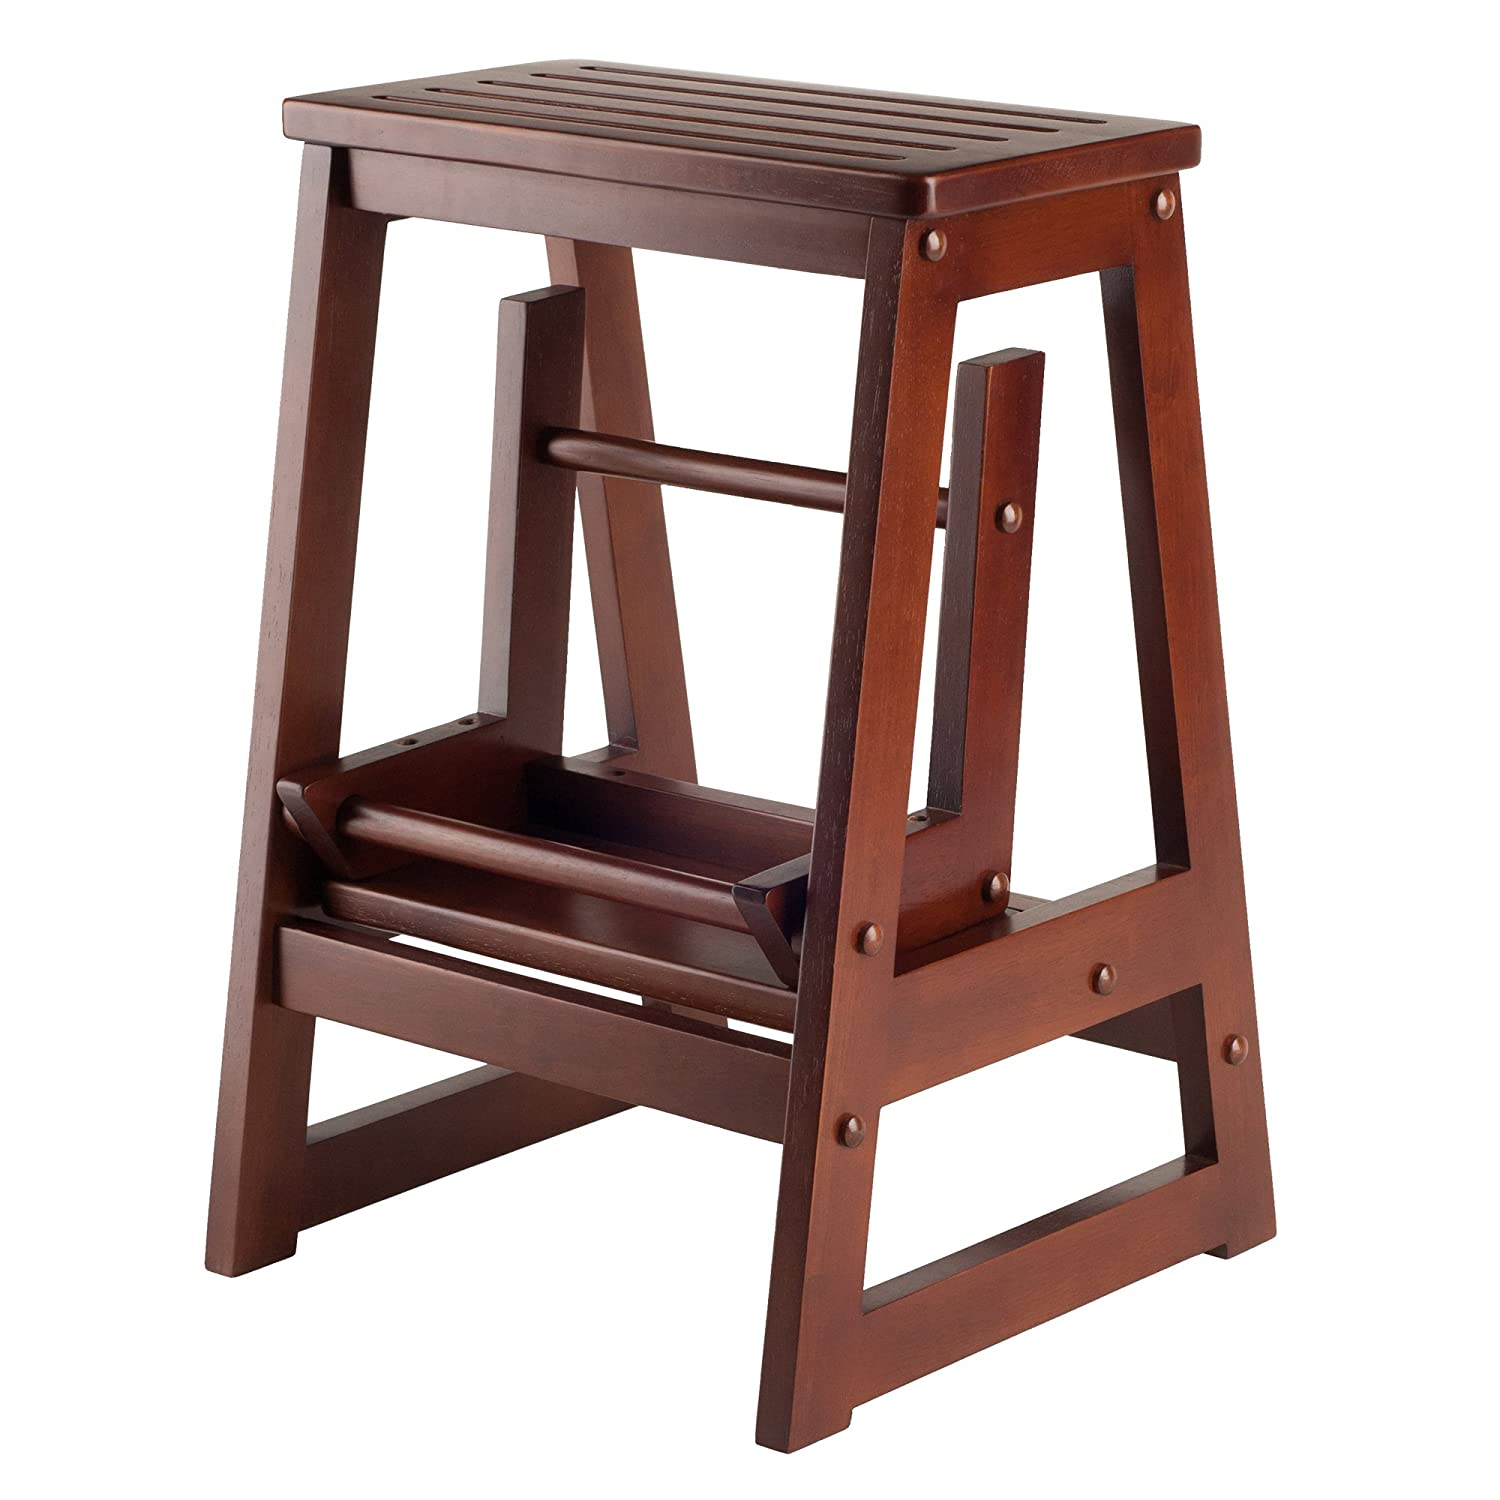 sc 1 st  Amazon.com & Amazon.com: Winsome Wood Step Stool Antique Walnut: Kitchen u0026 Dining islam-shia.org